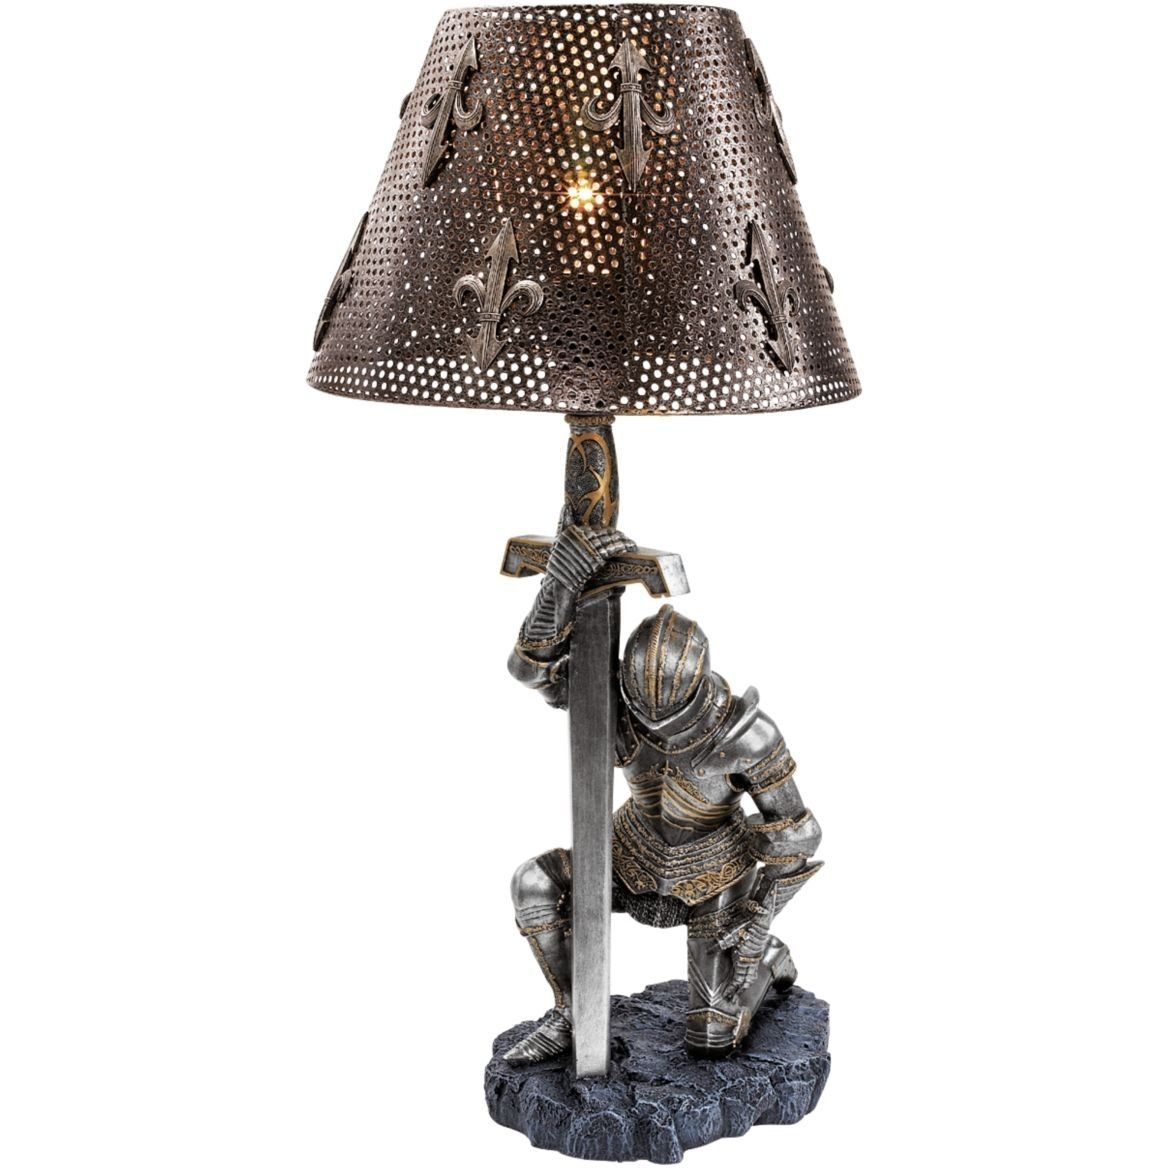 Medieval knight war battle sculptural lamp military gift medieval knight war battle sculptural lamp military gift geotapseo Choice Image